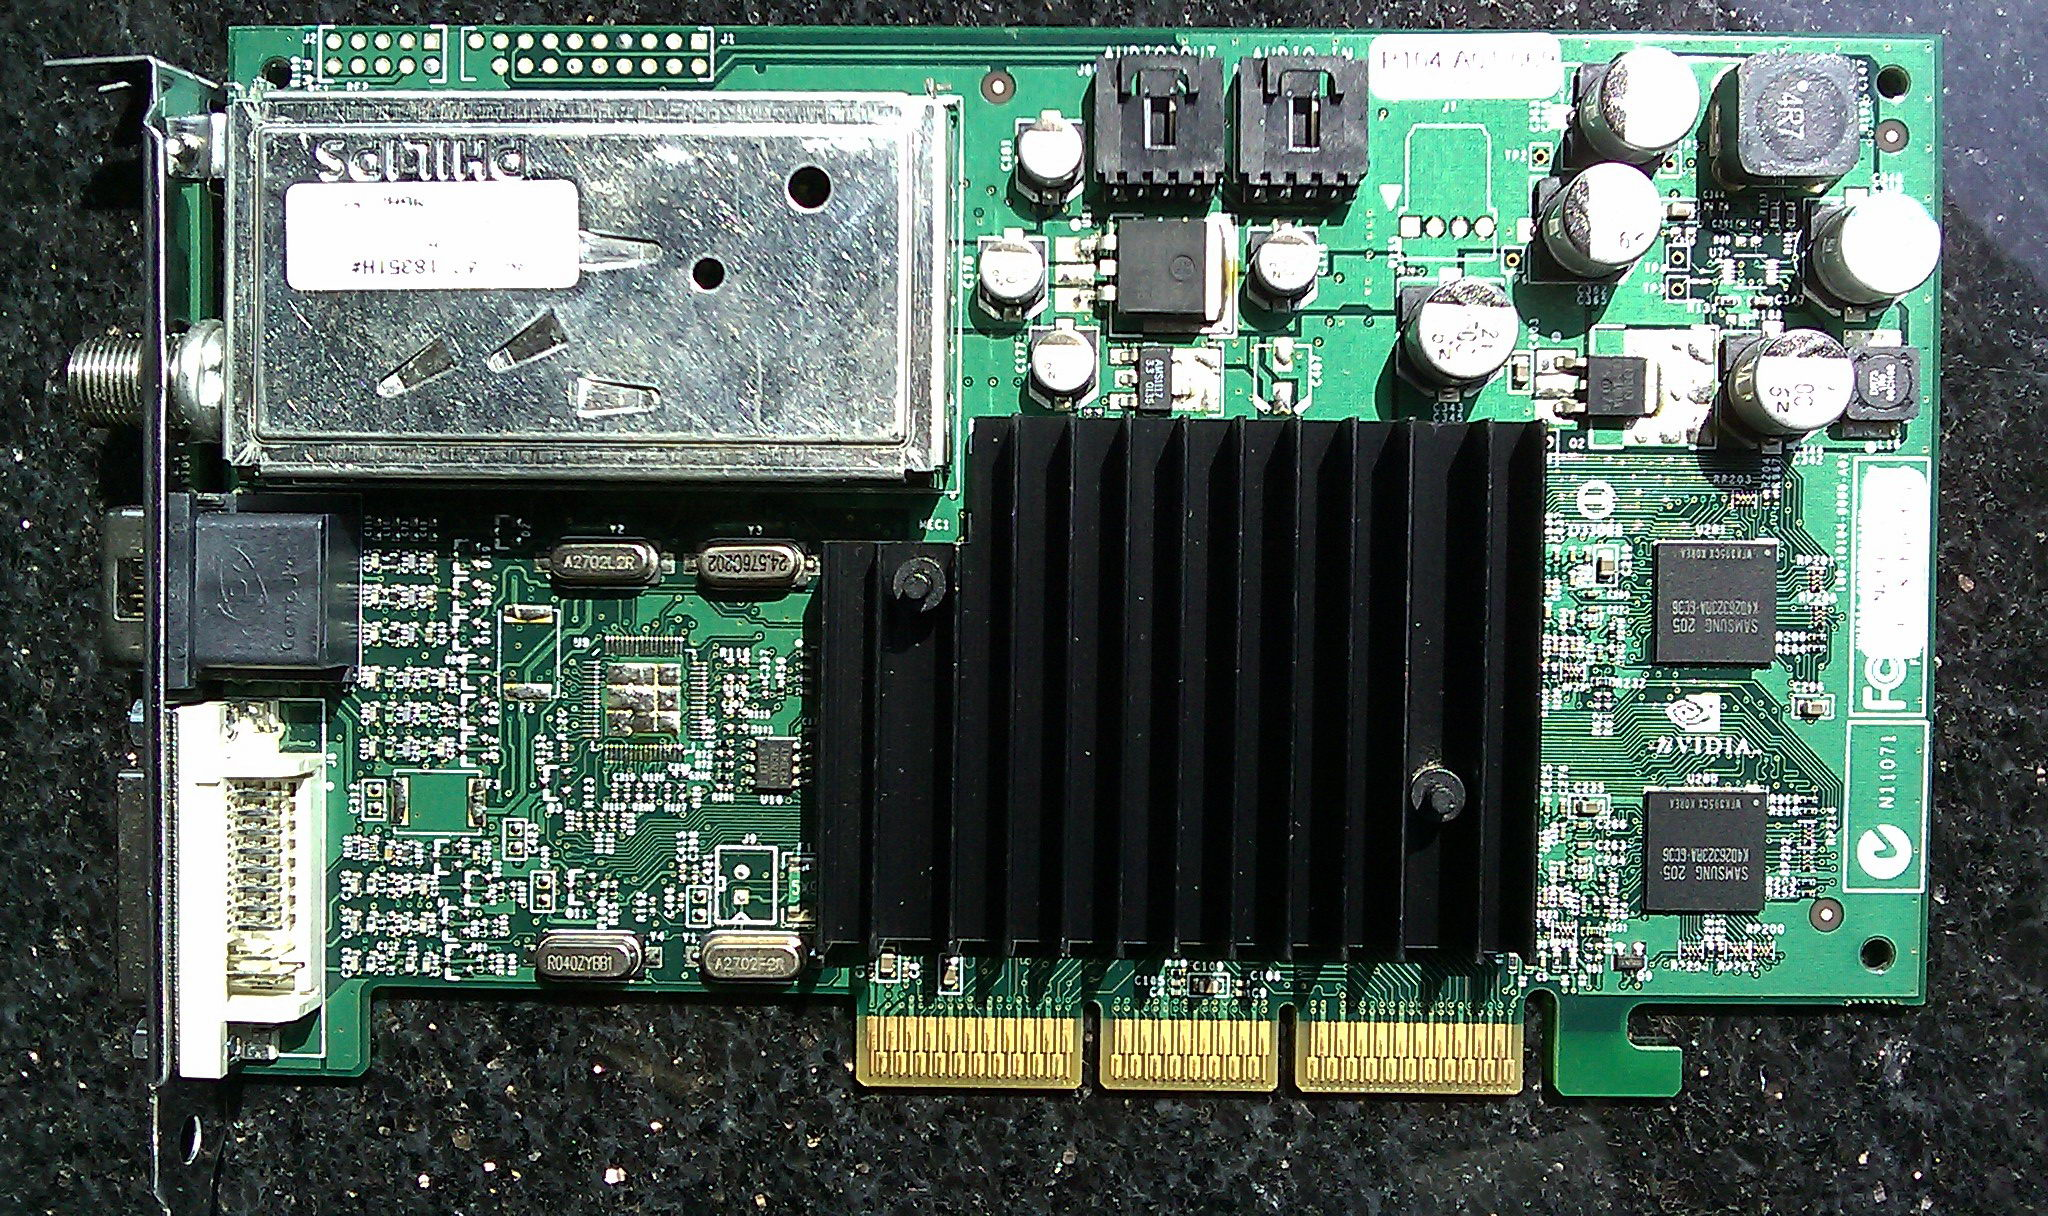 Nvidia Geforce4 Mx 4000 Driver Xp